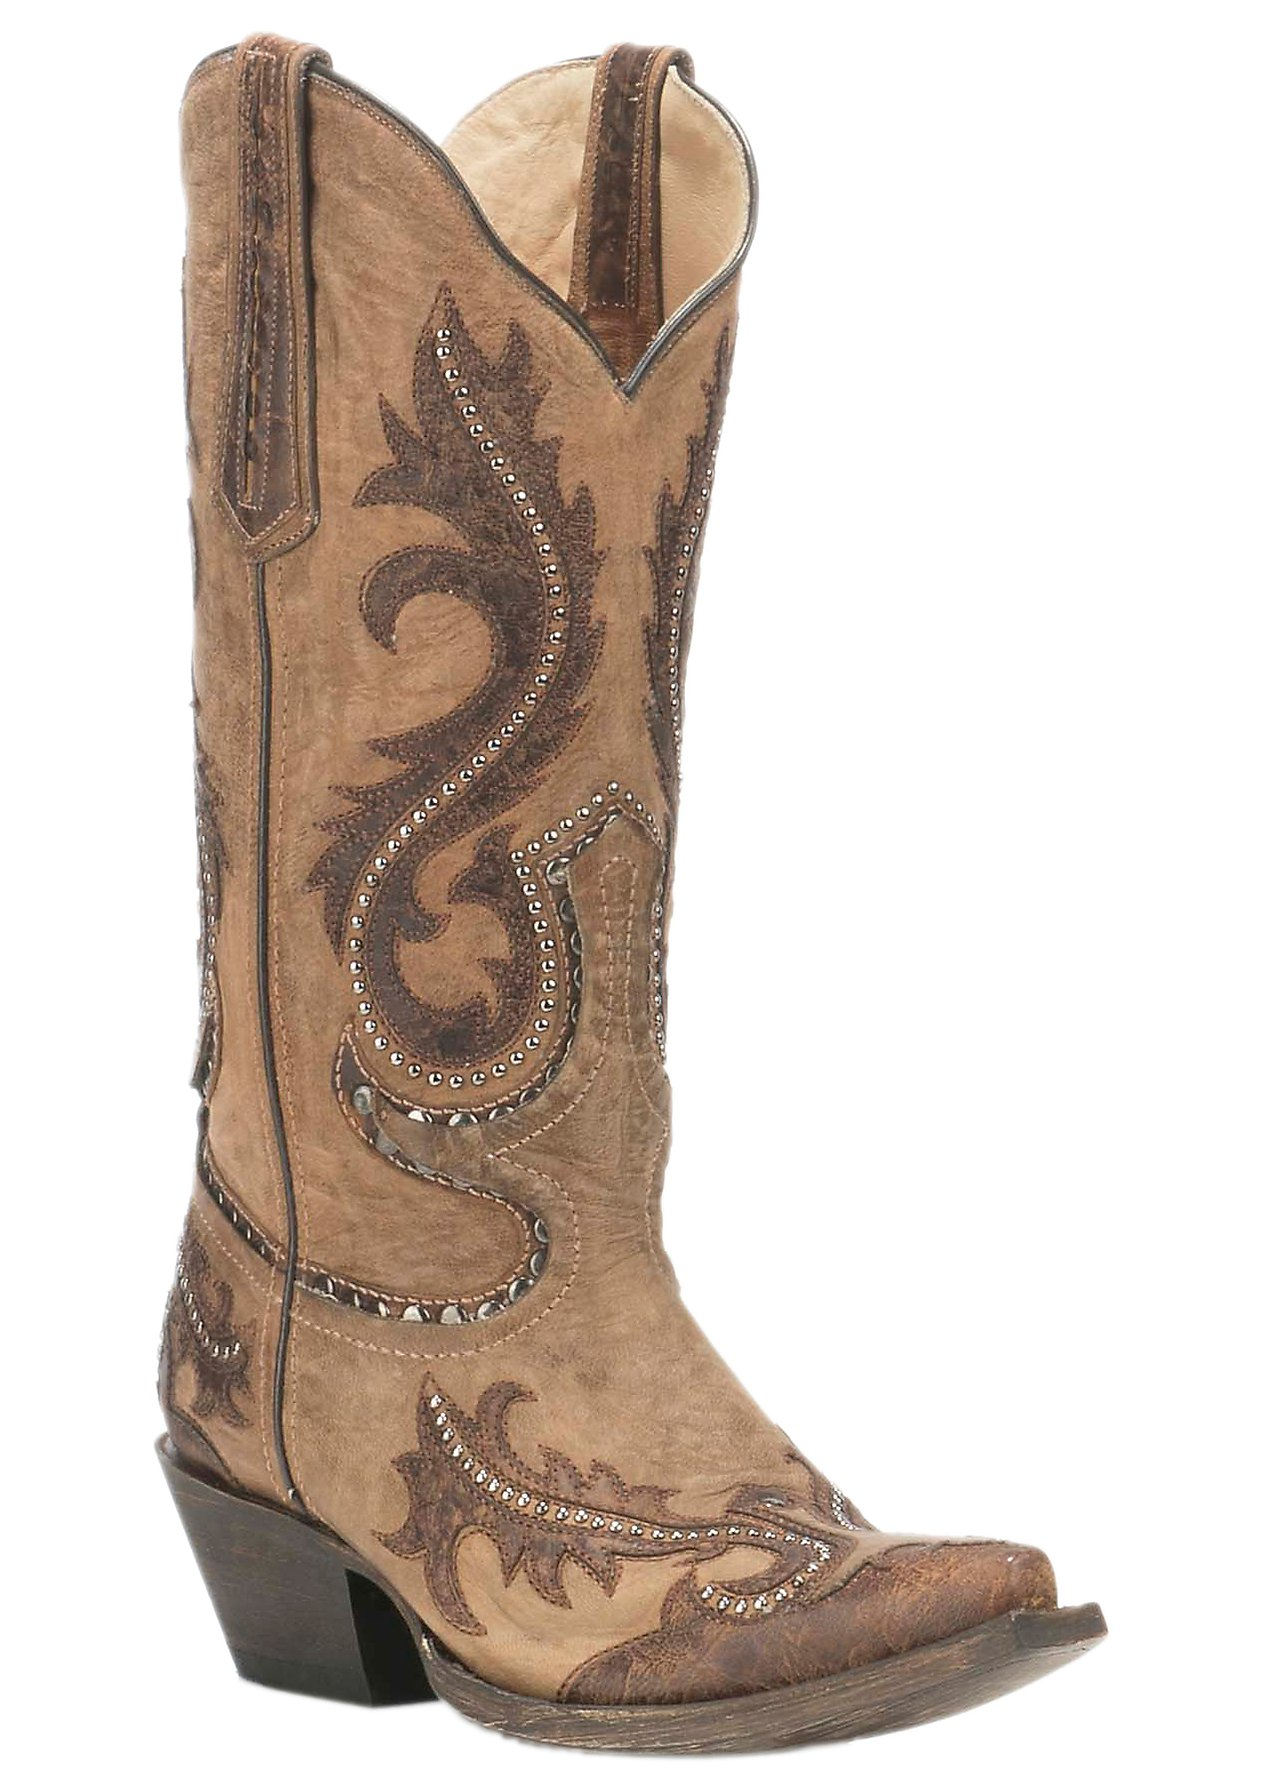 Shop New Cowboy Boots for Cowgirls & Cowboys - New Arrivals ...